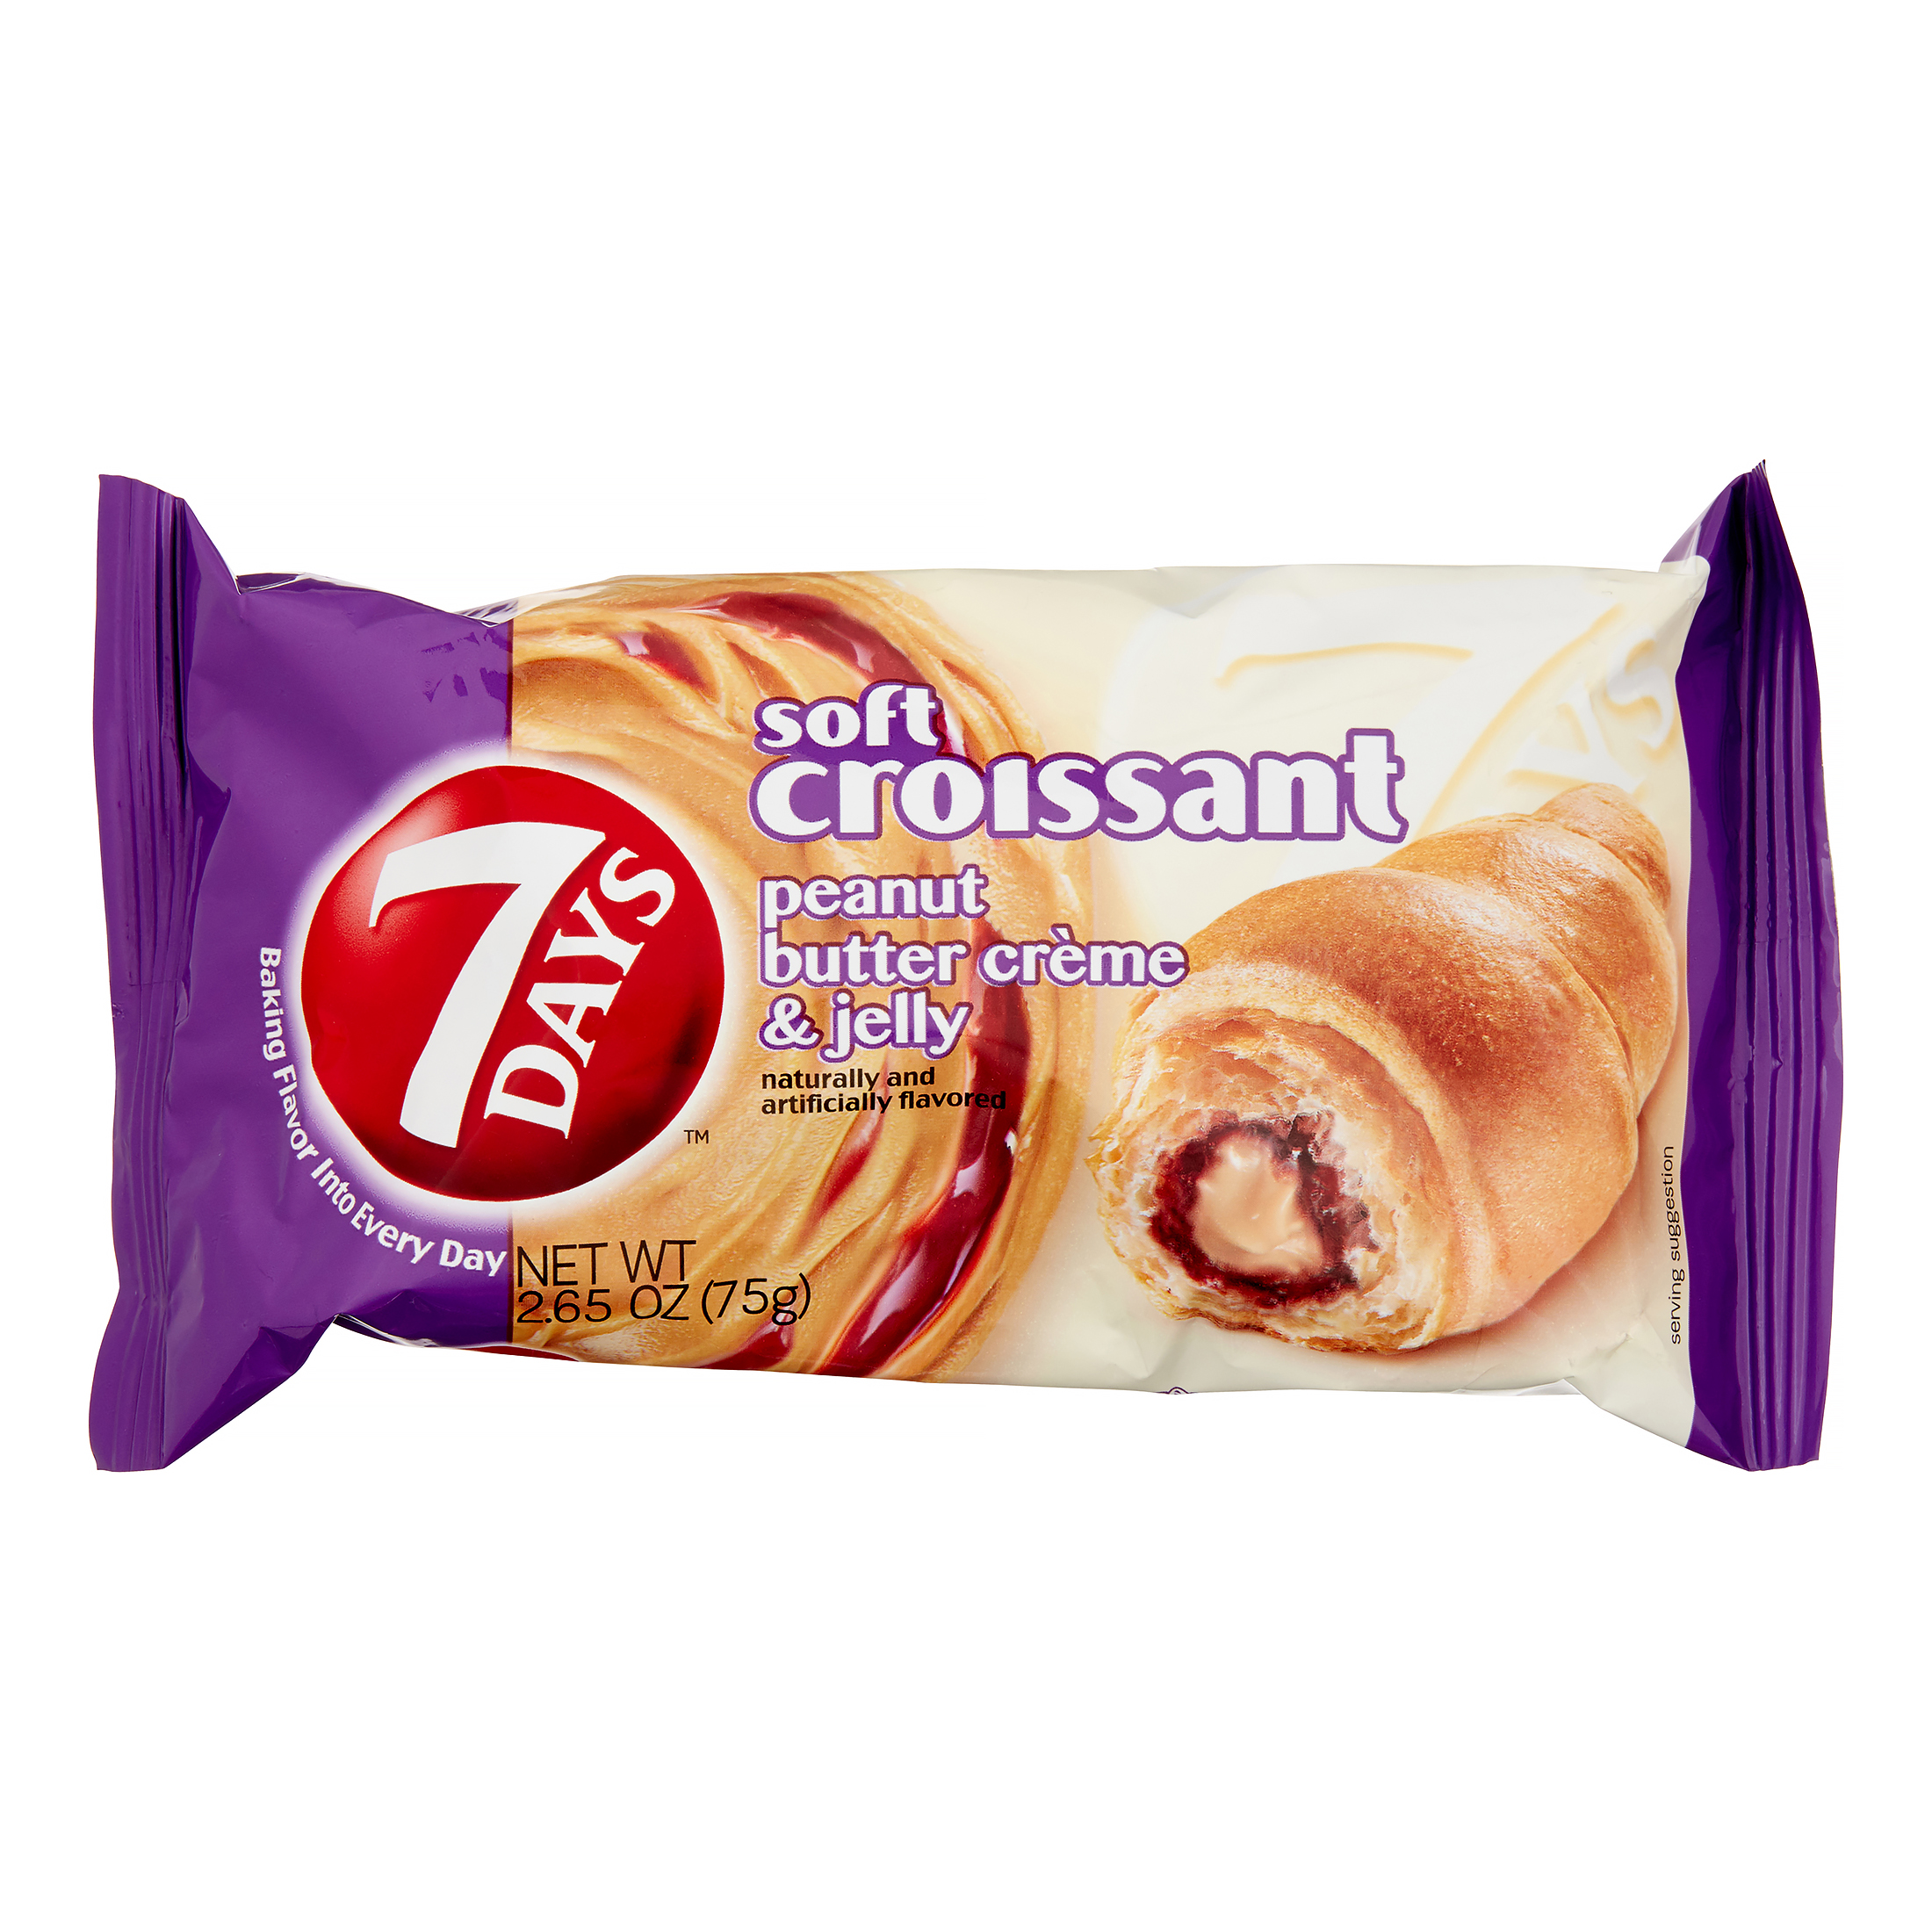 Image of 7 Days Soft Croissant Peanut Butter & Jelly 2.65oz